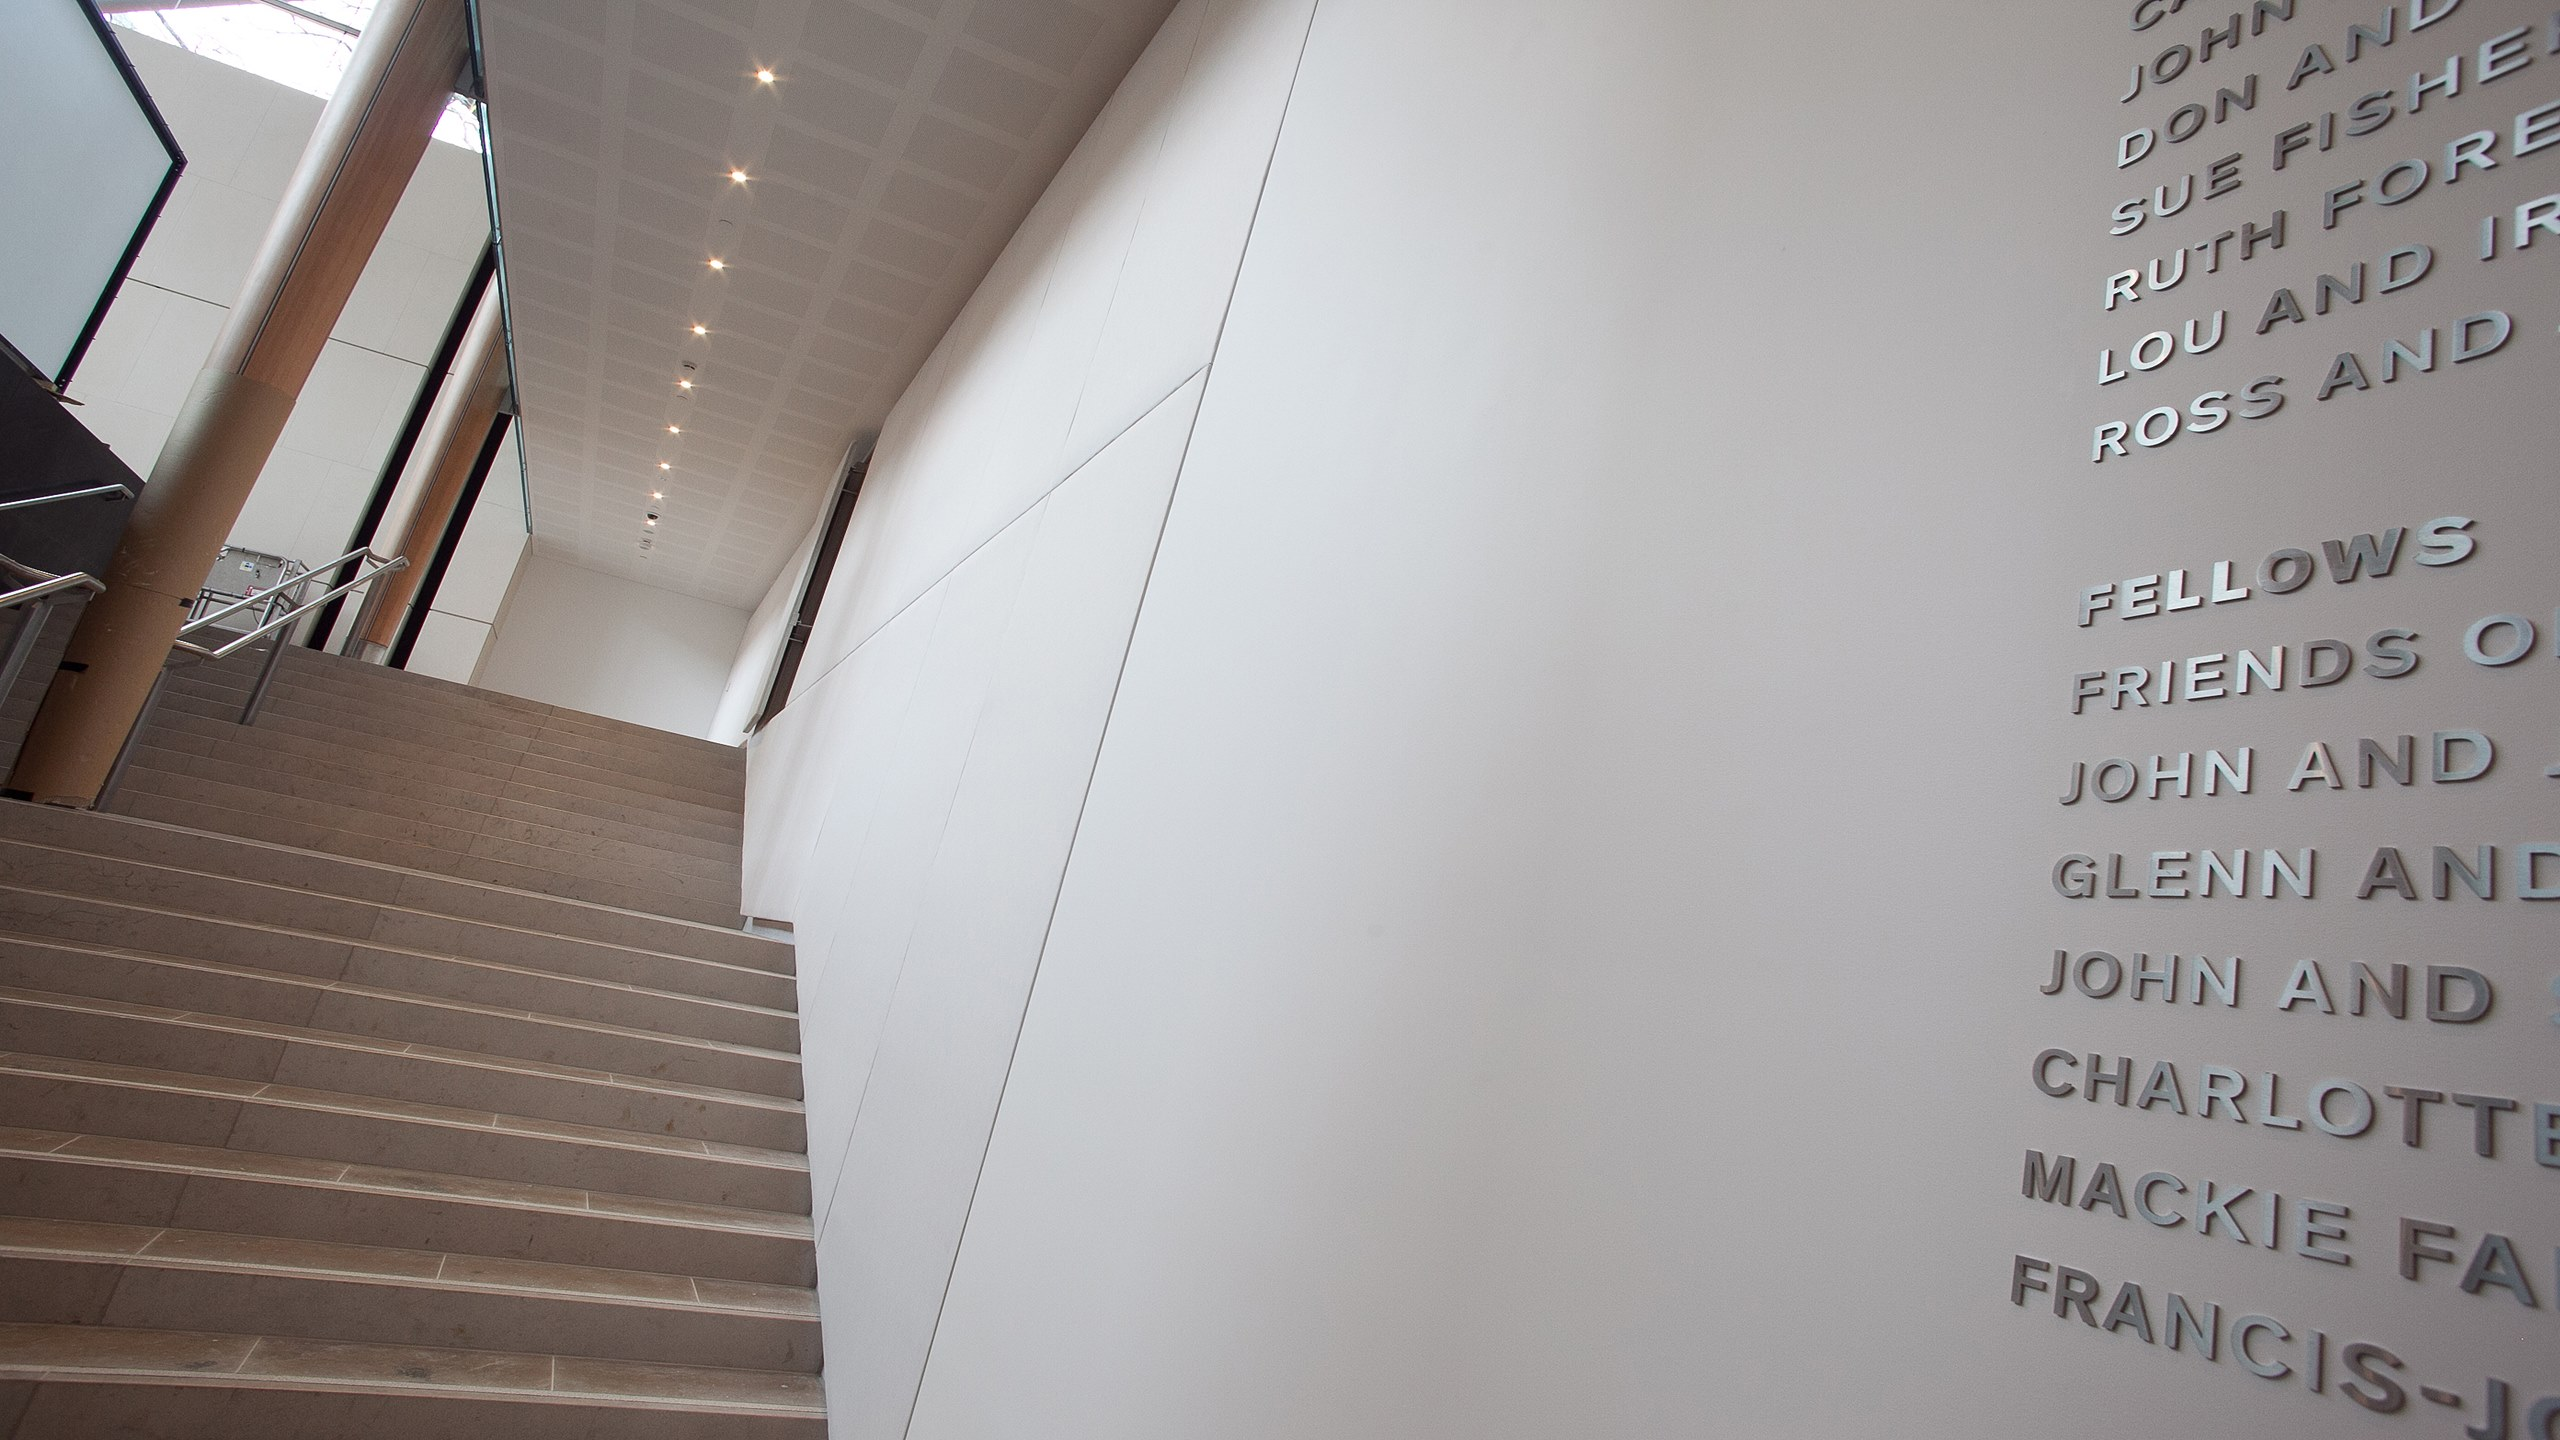 Auckland Art Gallery oversized Fabwall panels in light grey fabric